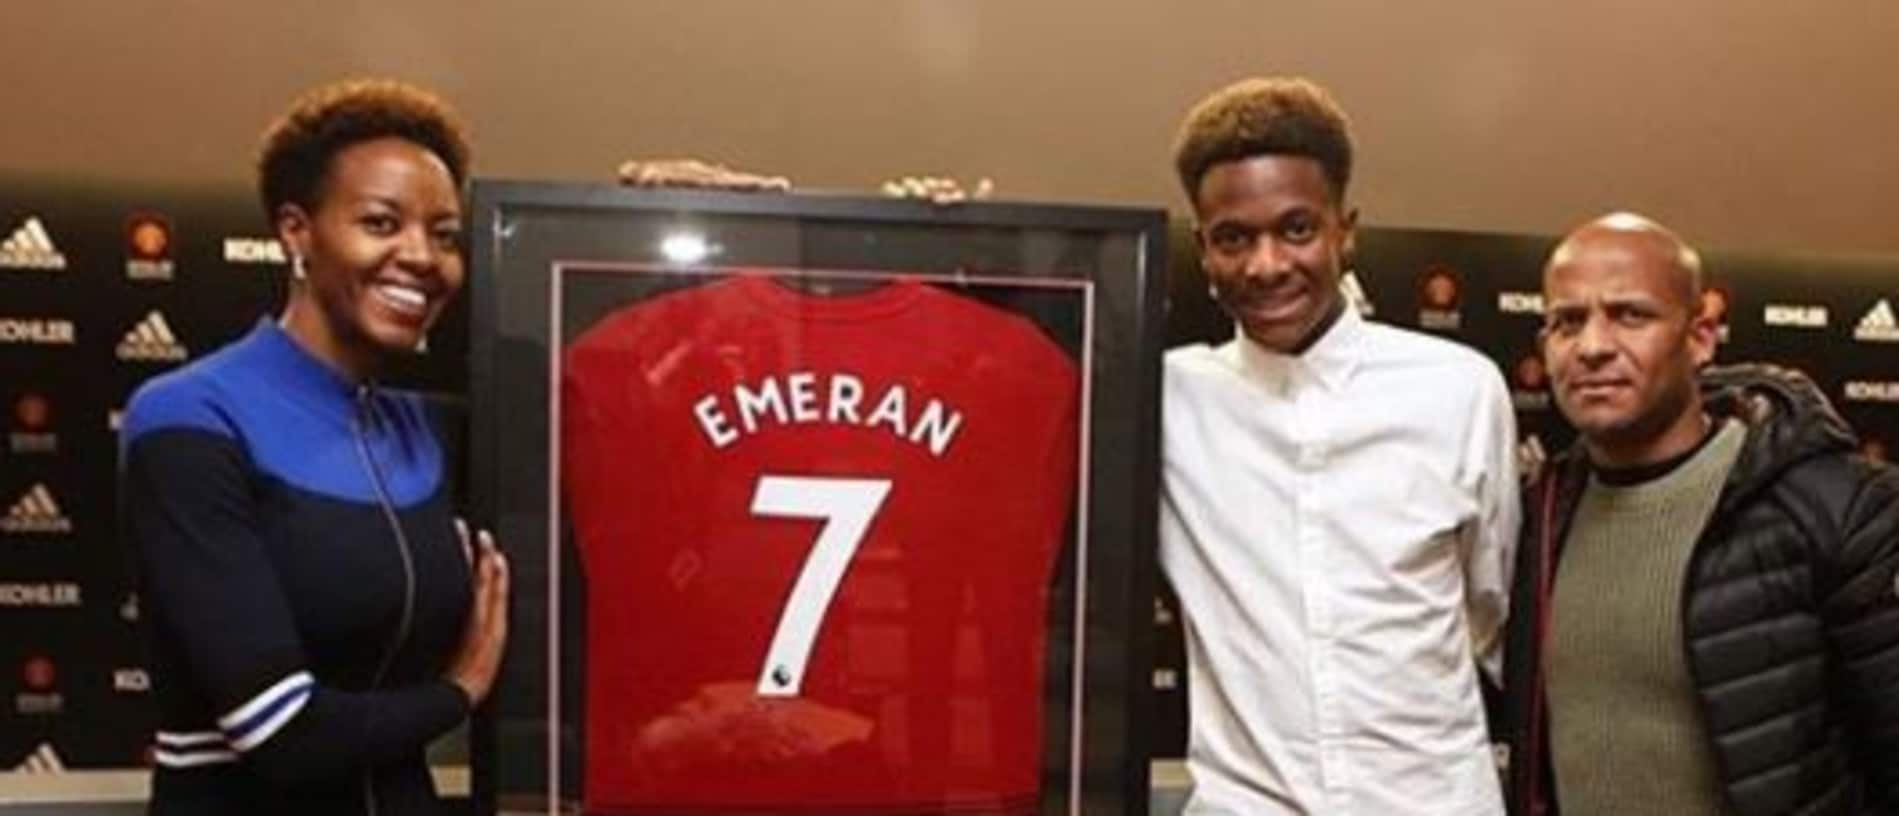 Emeran published pictures of him completing his United move this week